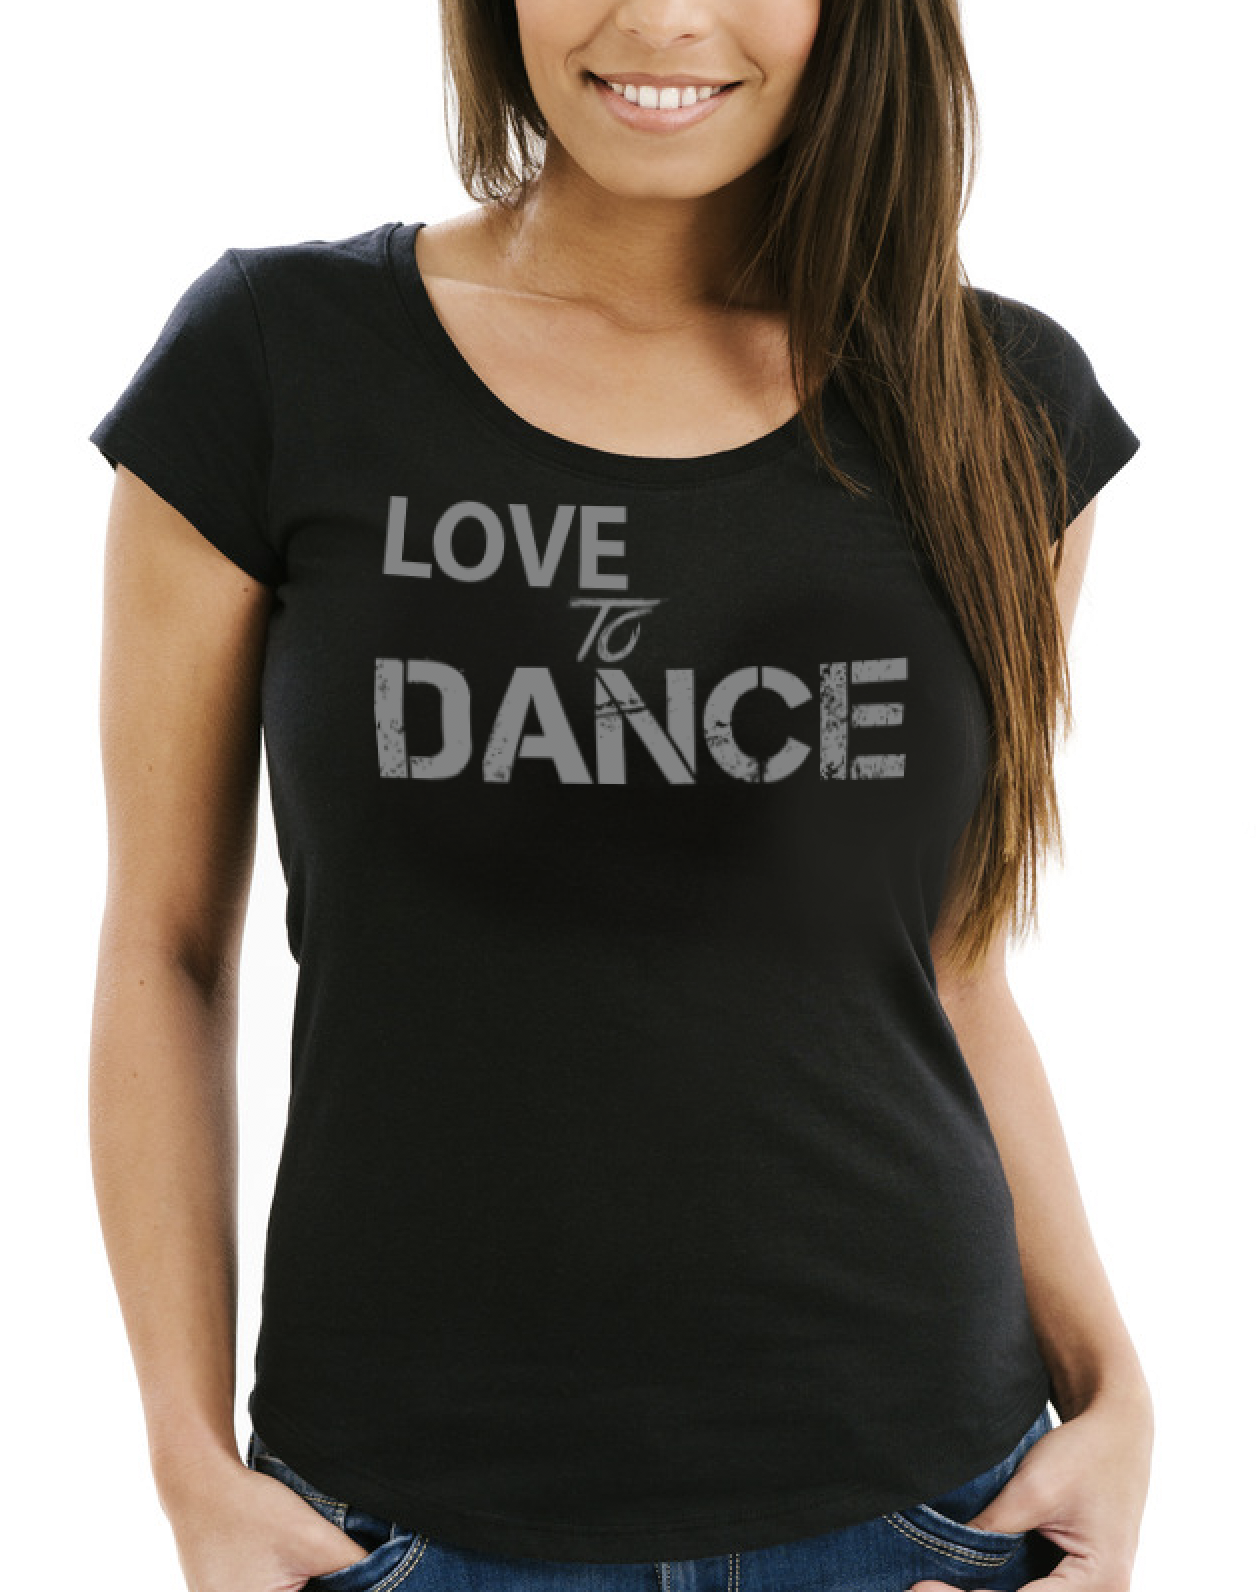 t-shirt_Love_to_dance_front